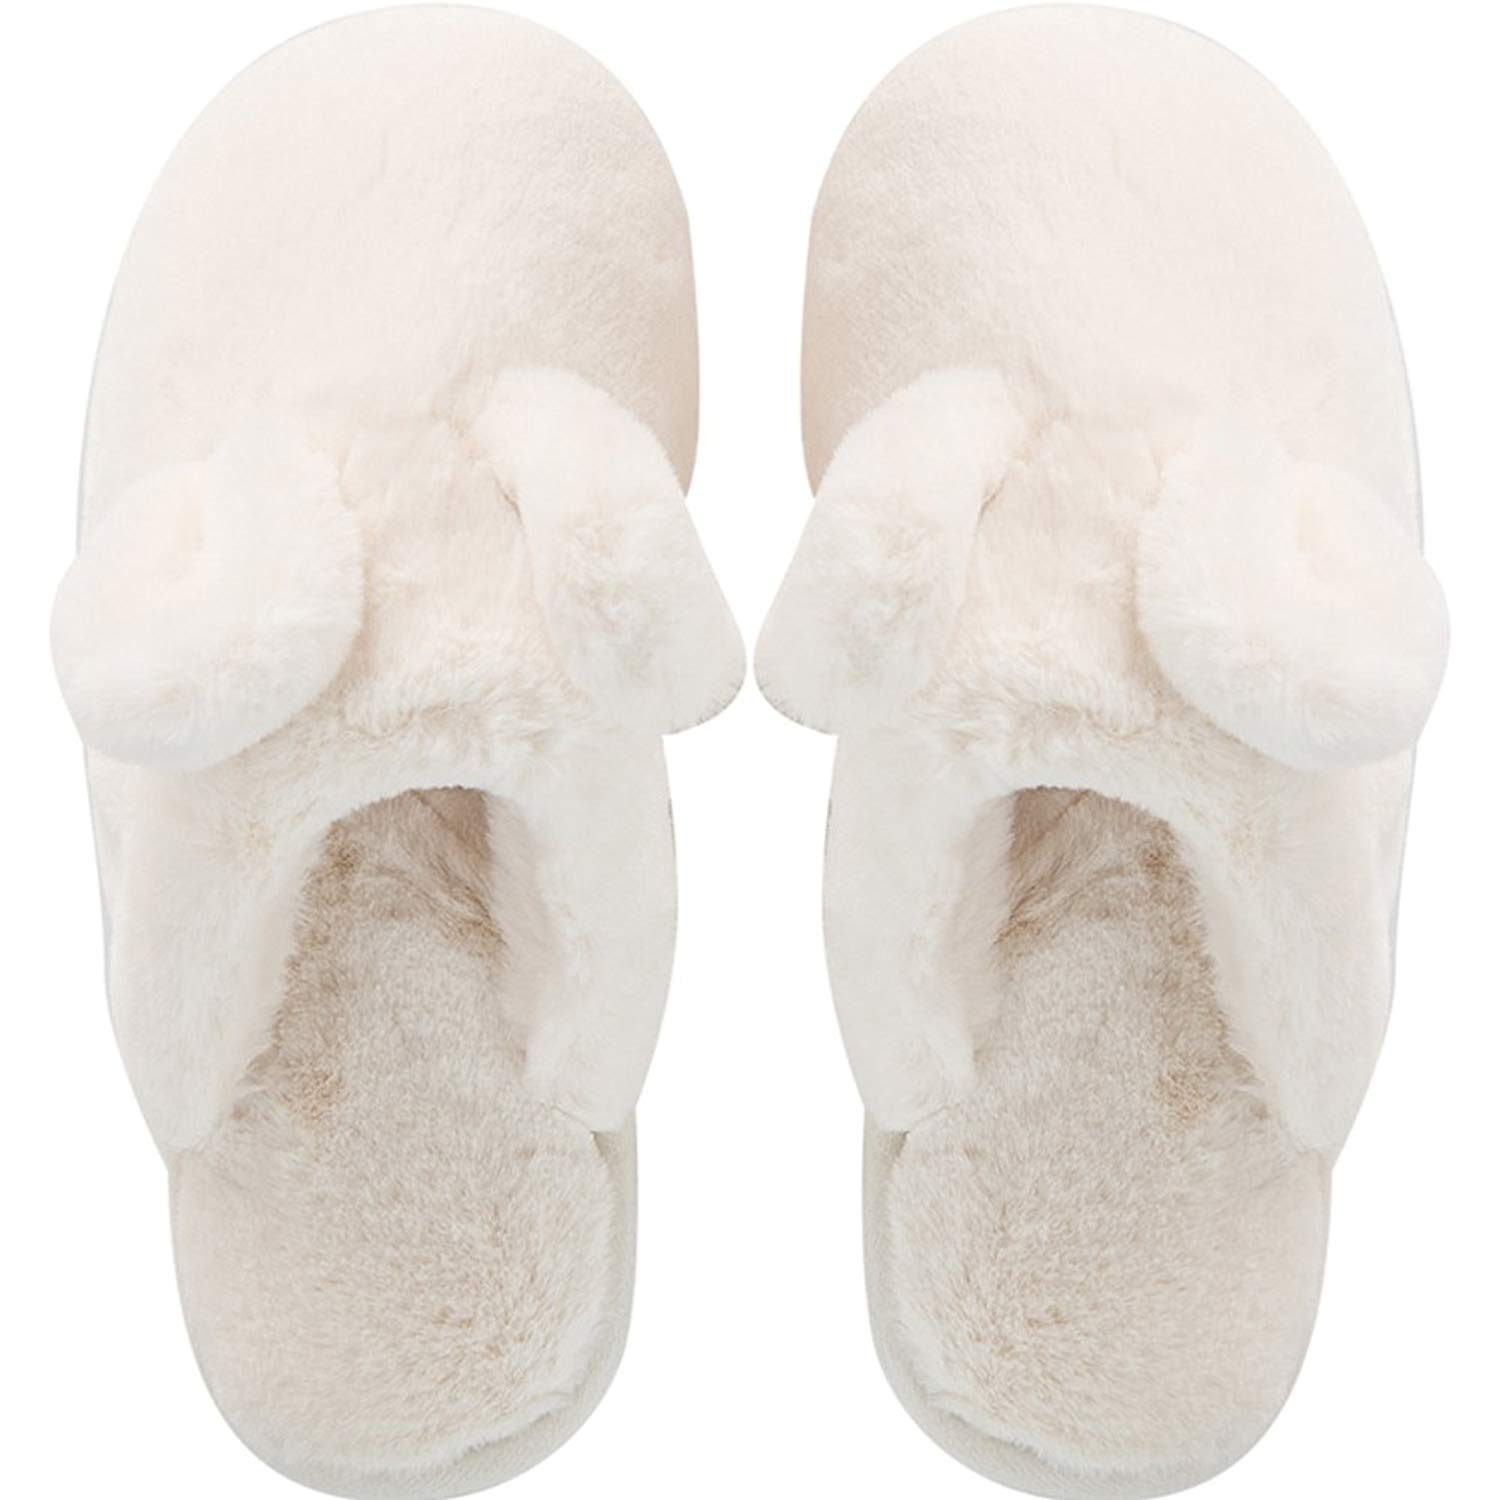 cad5078bc9fe Get Quotations · Hotmiss Rabbit Ear Slippers